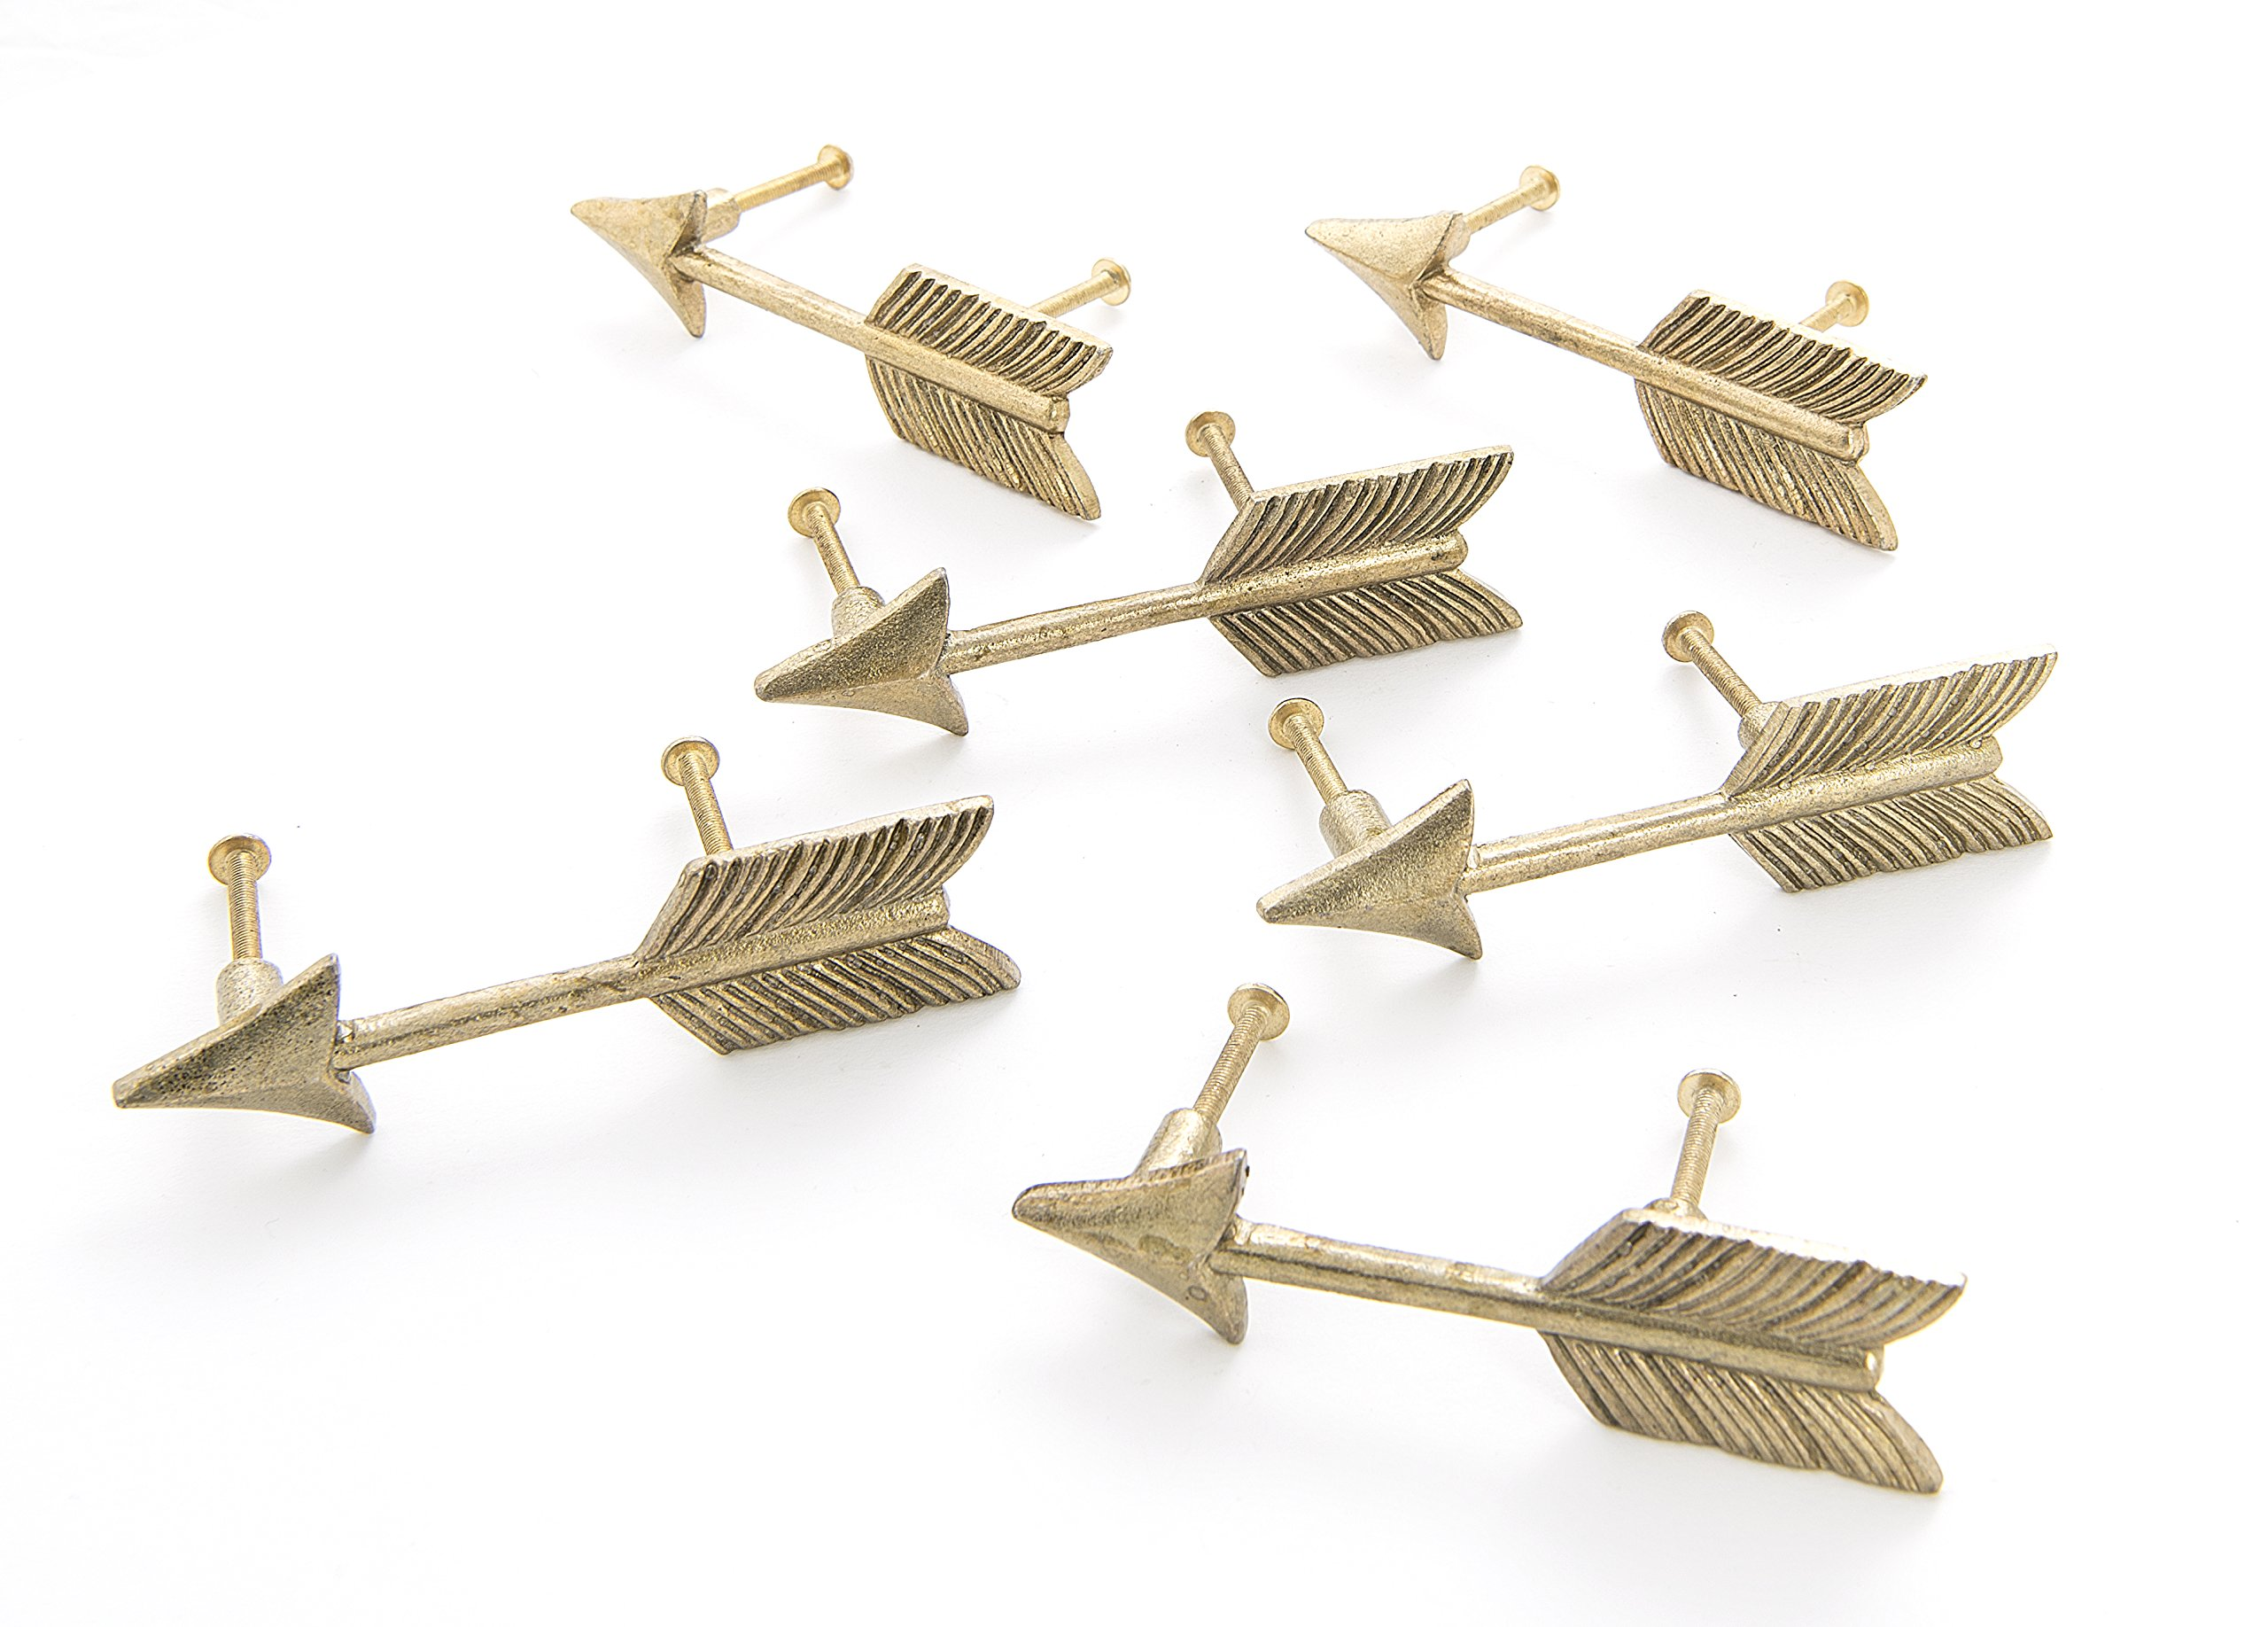 Dritz Home 47078A Metal Arrow Drawer Pull Handcrafted Pulls for Cabinets & Drawers